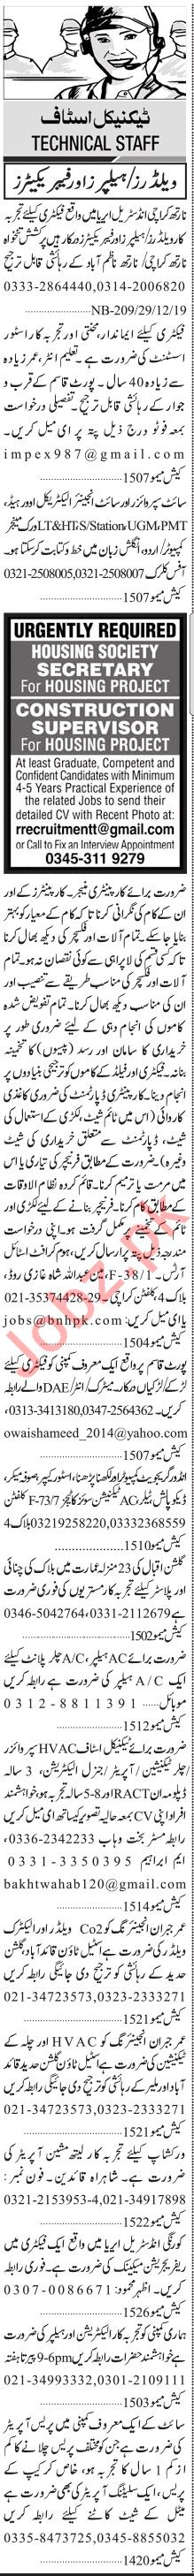 Jang Sunday Classified Ads 29 Dec 2019 for Technical Staff